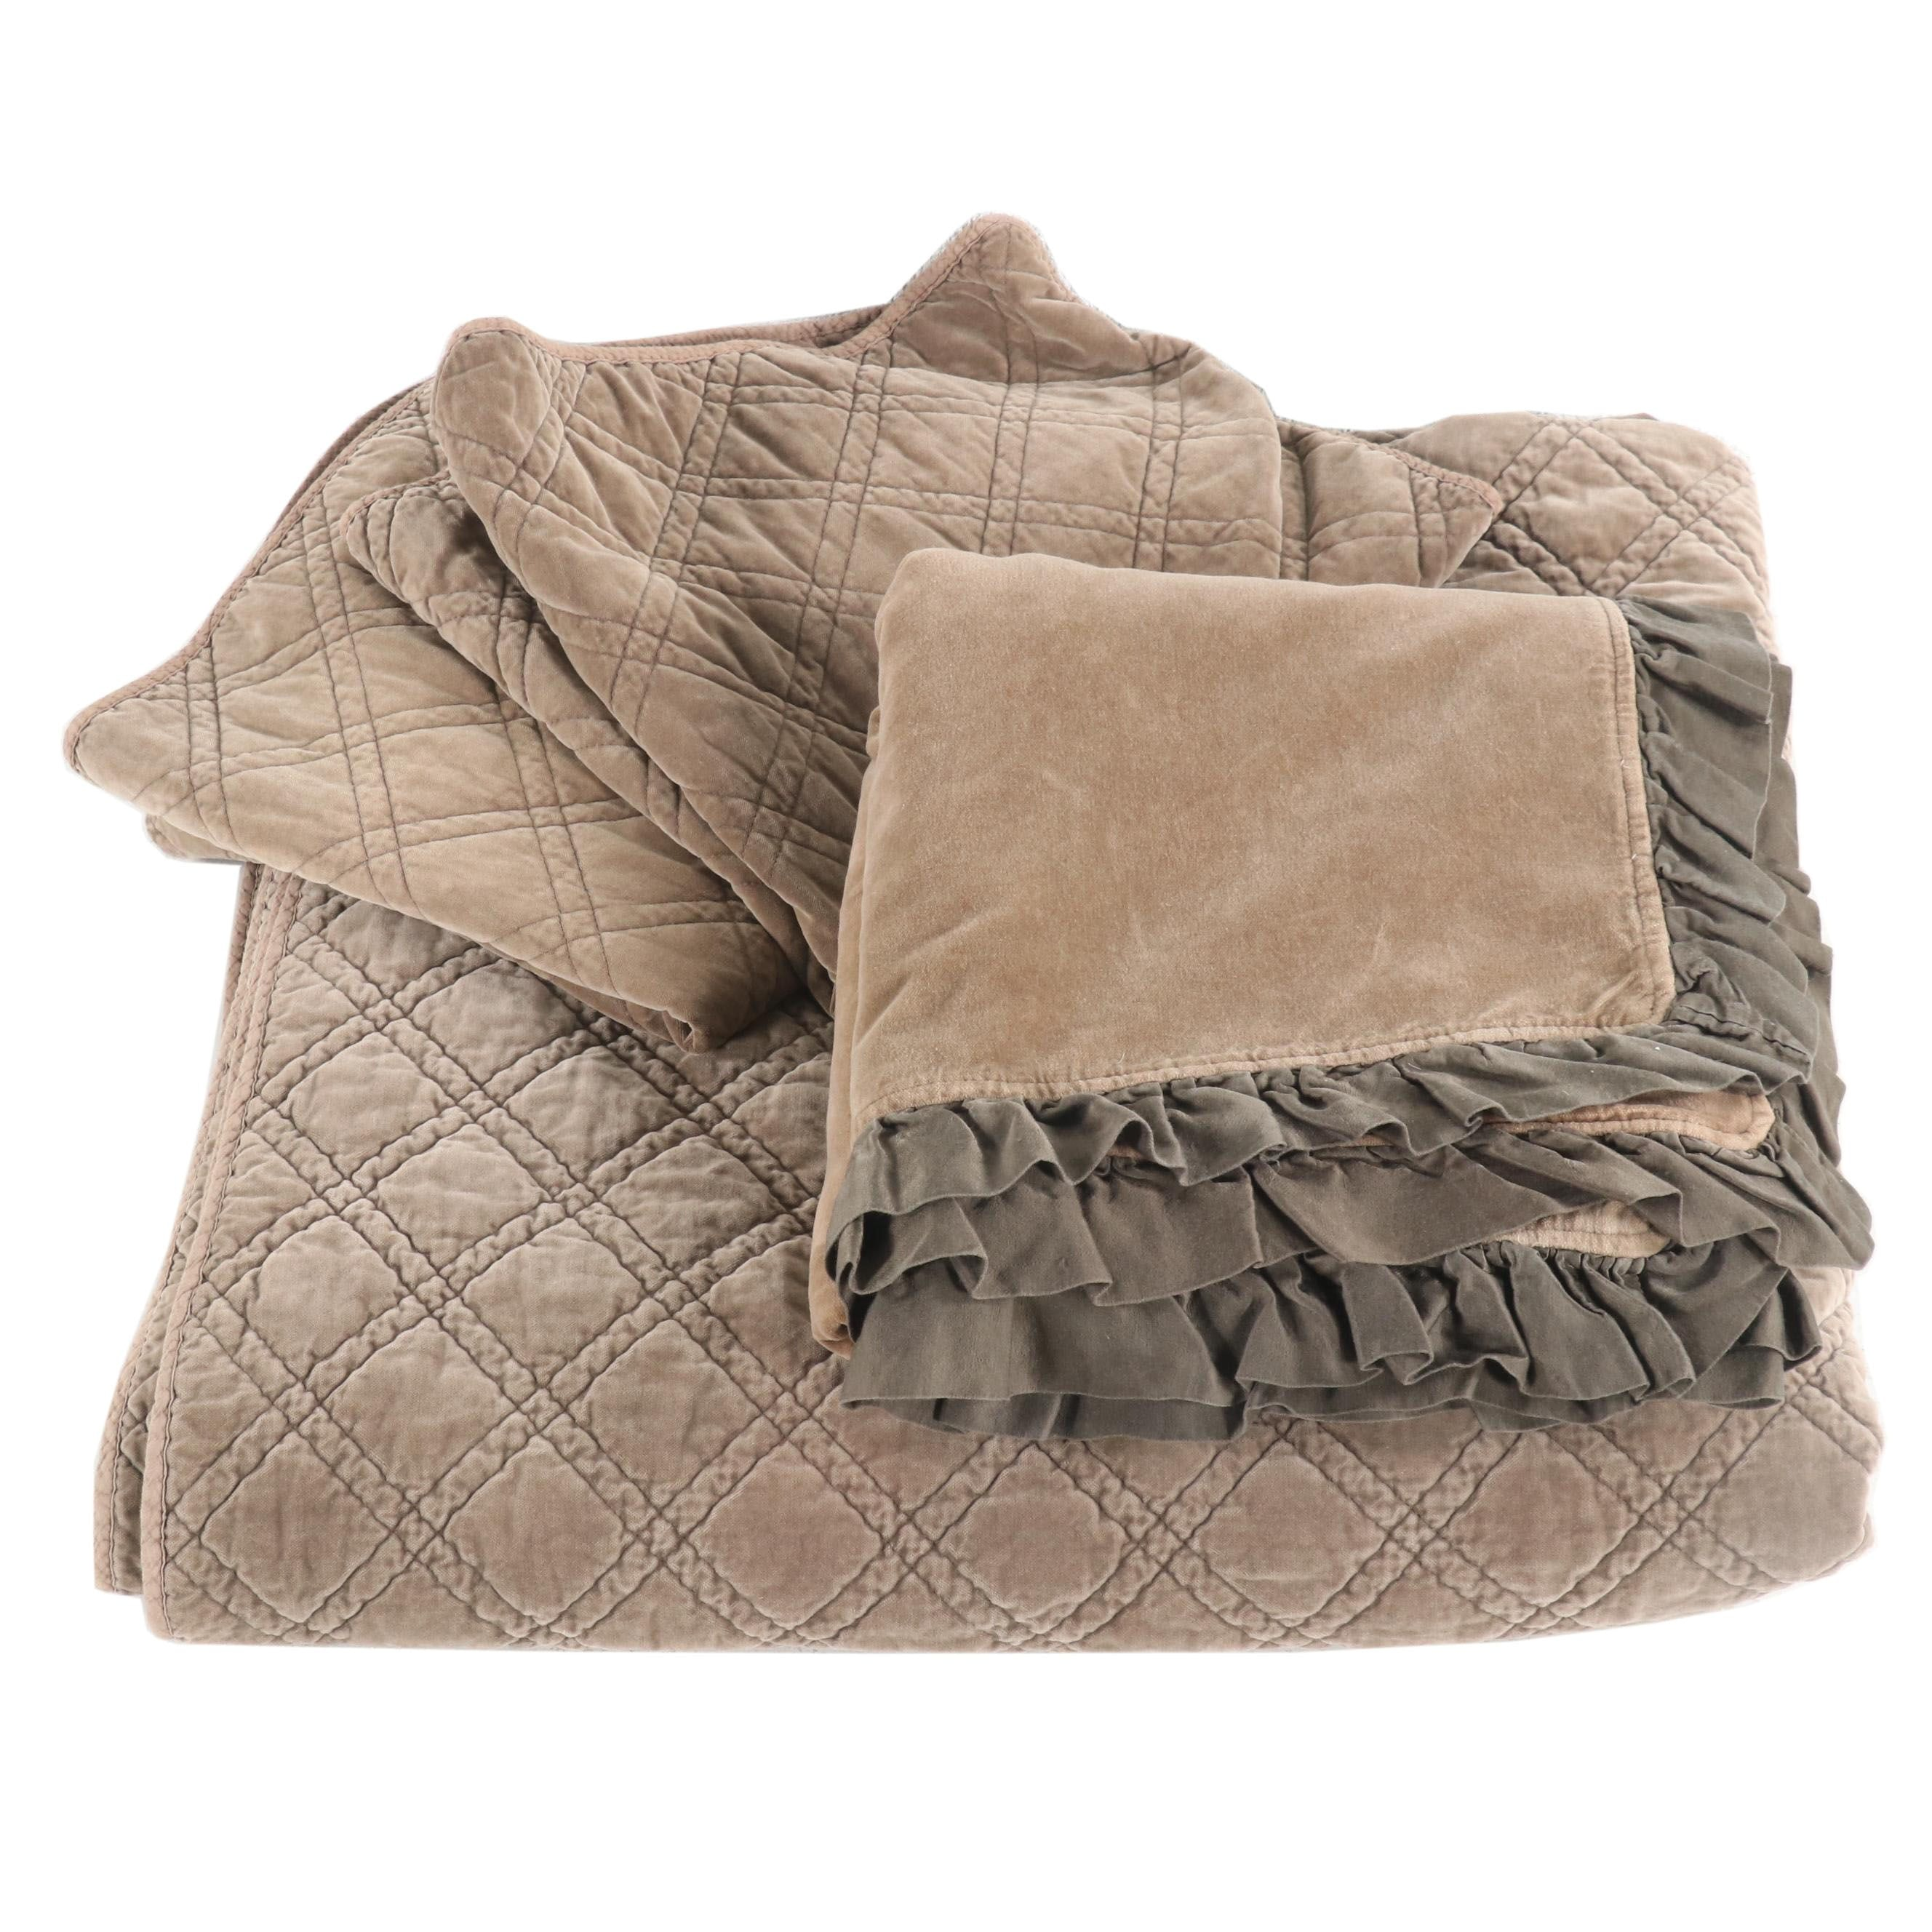 Collection of Luxury Bedding Featuring Pom Pom at Home by Hilde Leiaghat